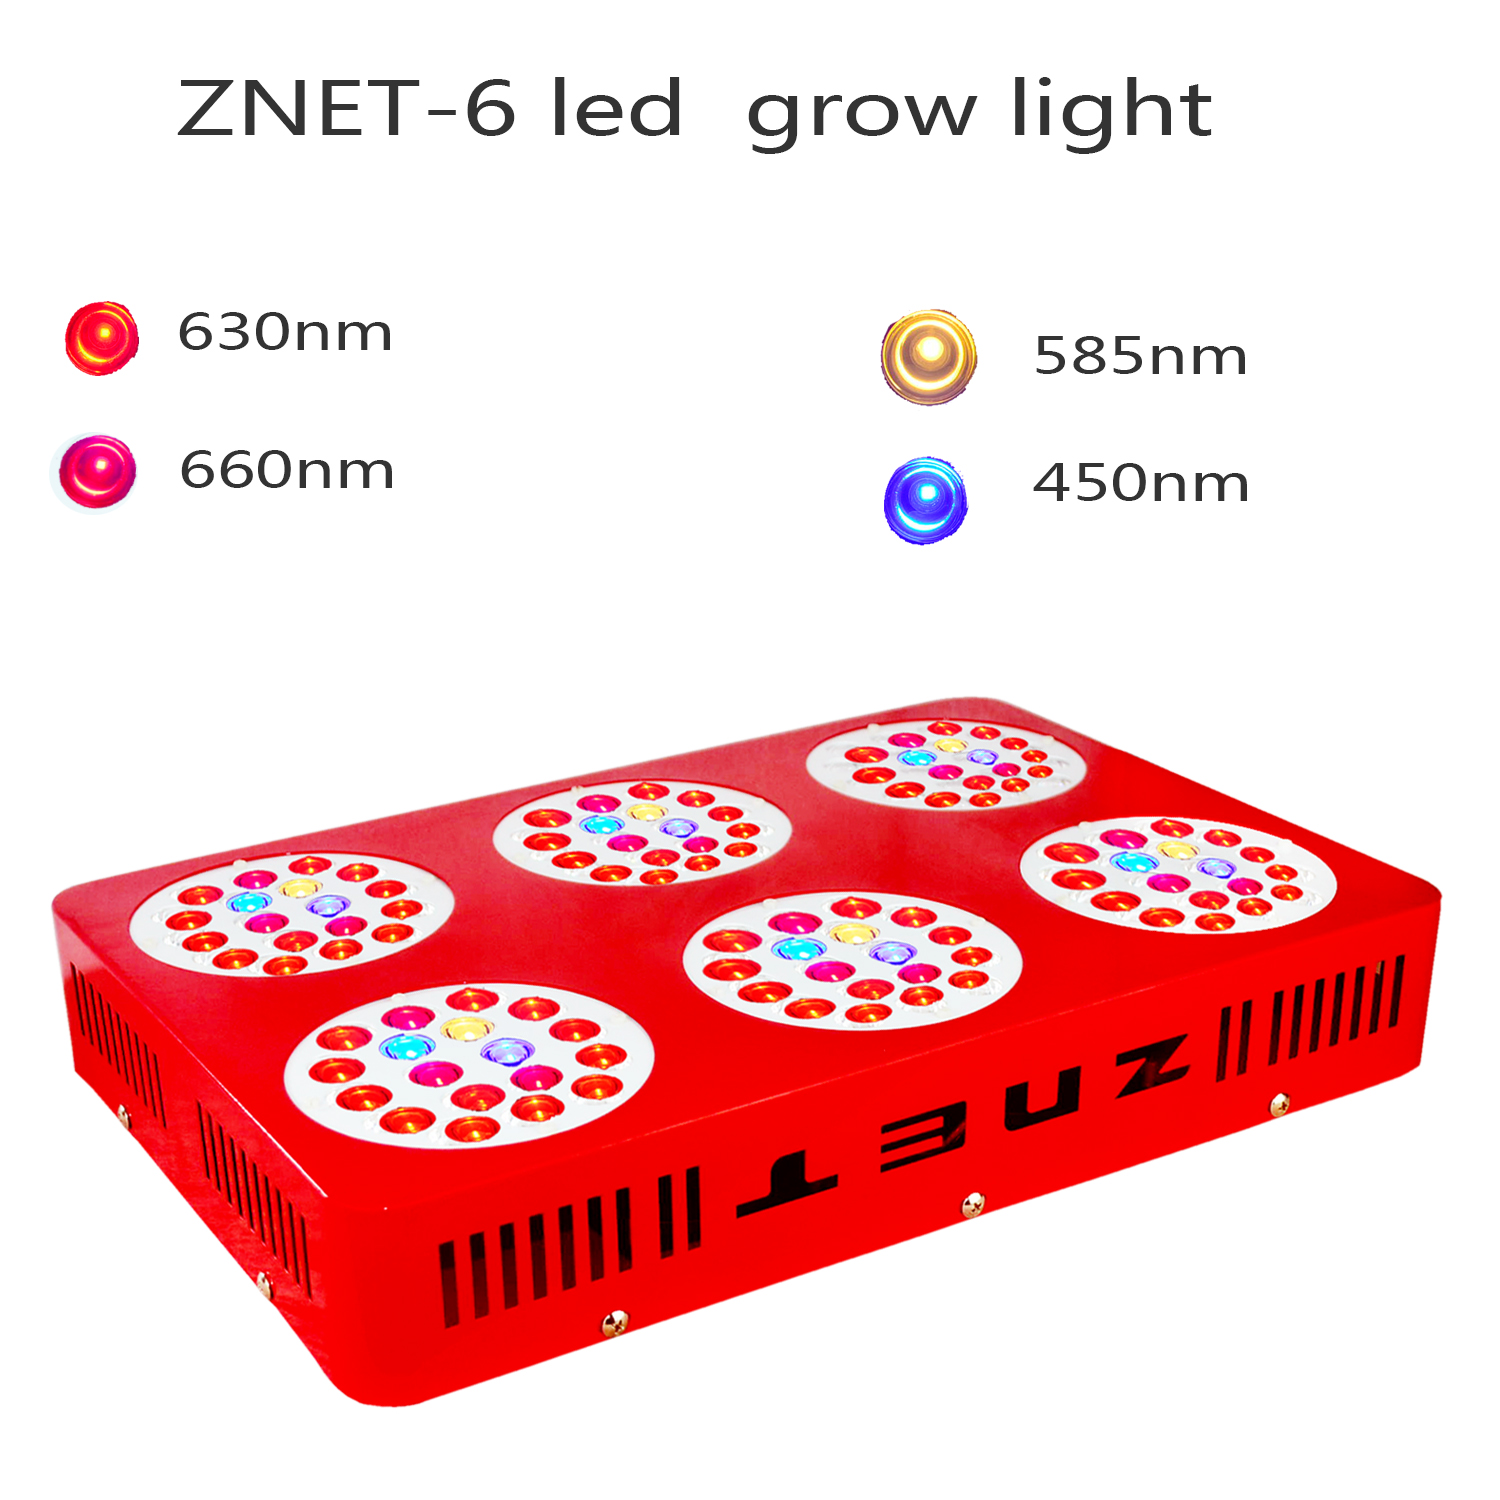 Led Licht Für Zimmerpflanzen Wyzm Led Grow Light Led Pflanzenlampe Full Spectrum